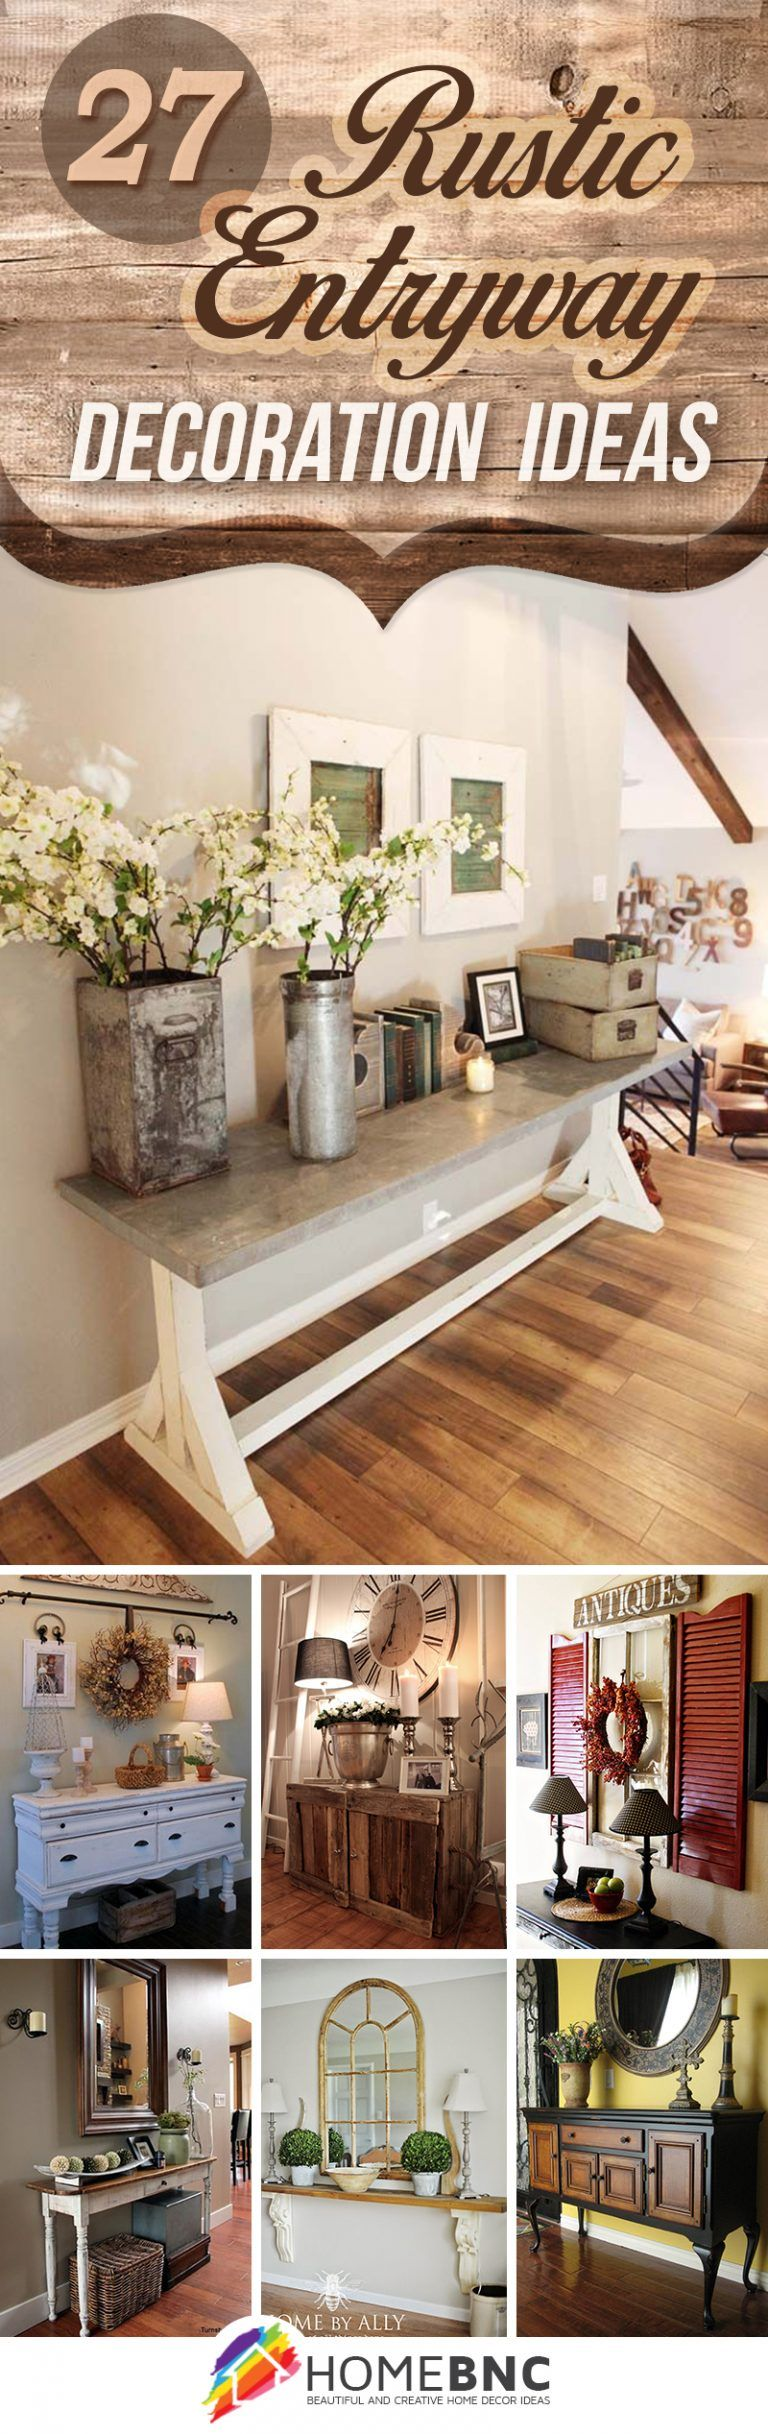 Rustic living room decor rustic hallway table and rustic entryway - Decoration Rustic Entryway Decorations Rustic Entrywayentryway Tablesentryway Decorhall Tablesentryway Table Decorationsfarm Decorationsliving Room